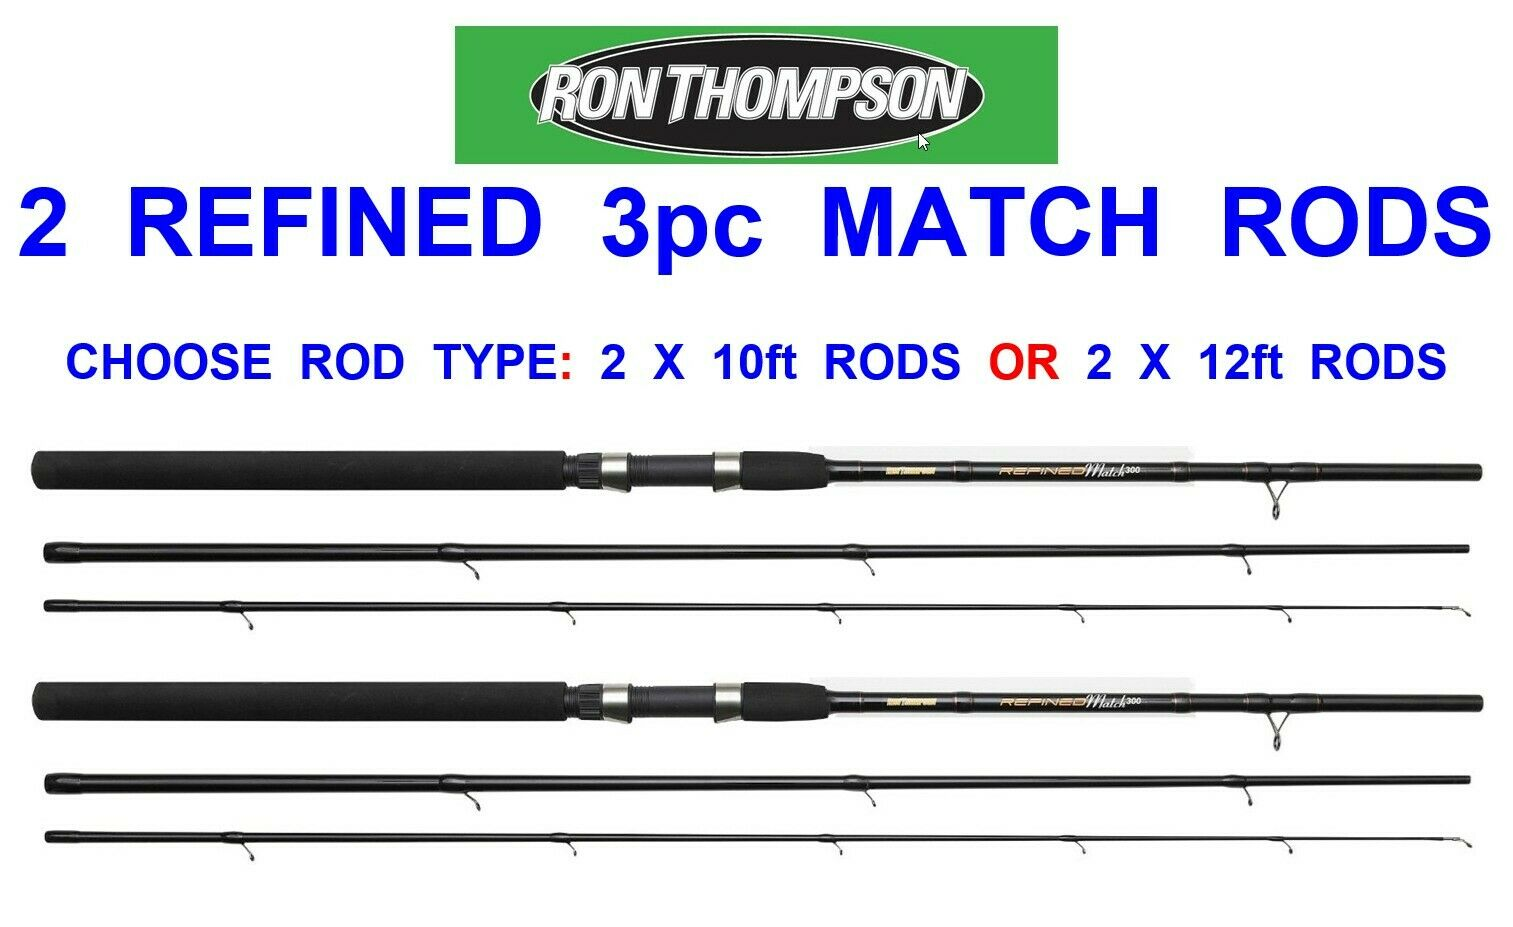 2 RON THOMPSON REFINED 3pc MATCH RODS FOR COARSE FLOAT FEEDER FISHING 10ft 12ft